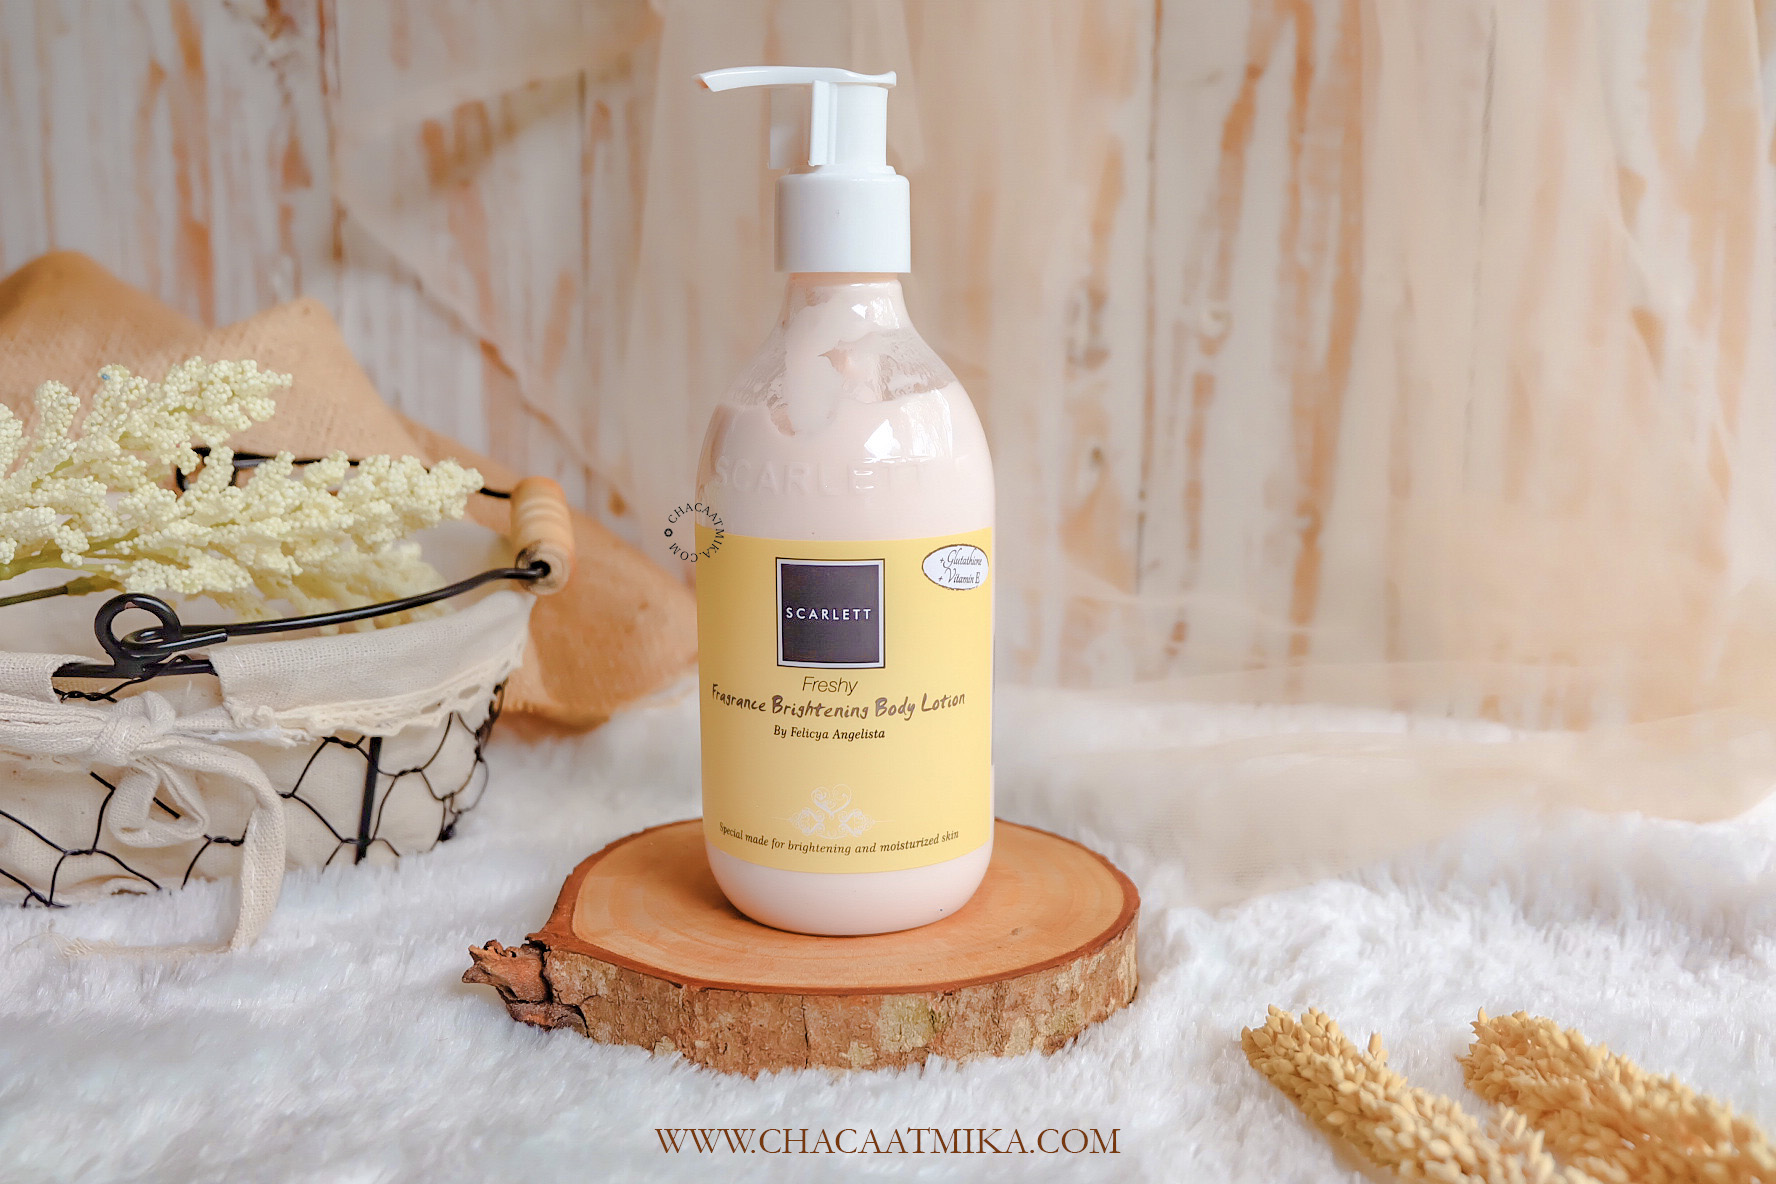 Review Scarlett Whitening Body Lotion